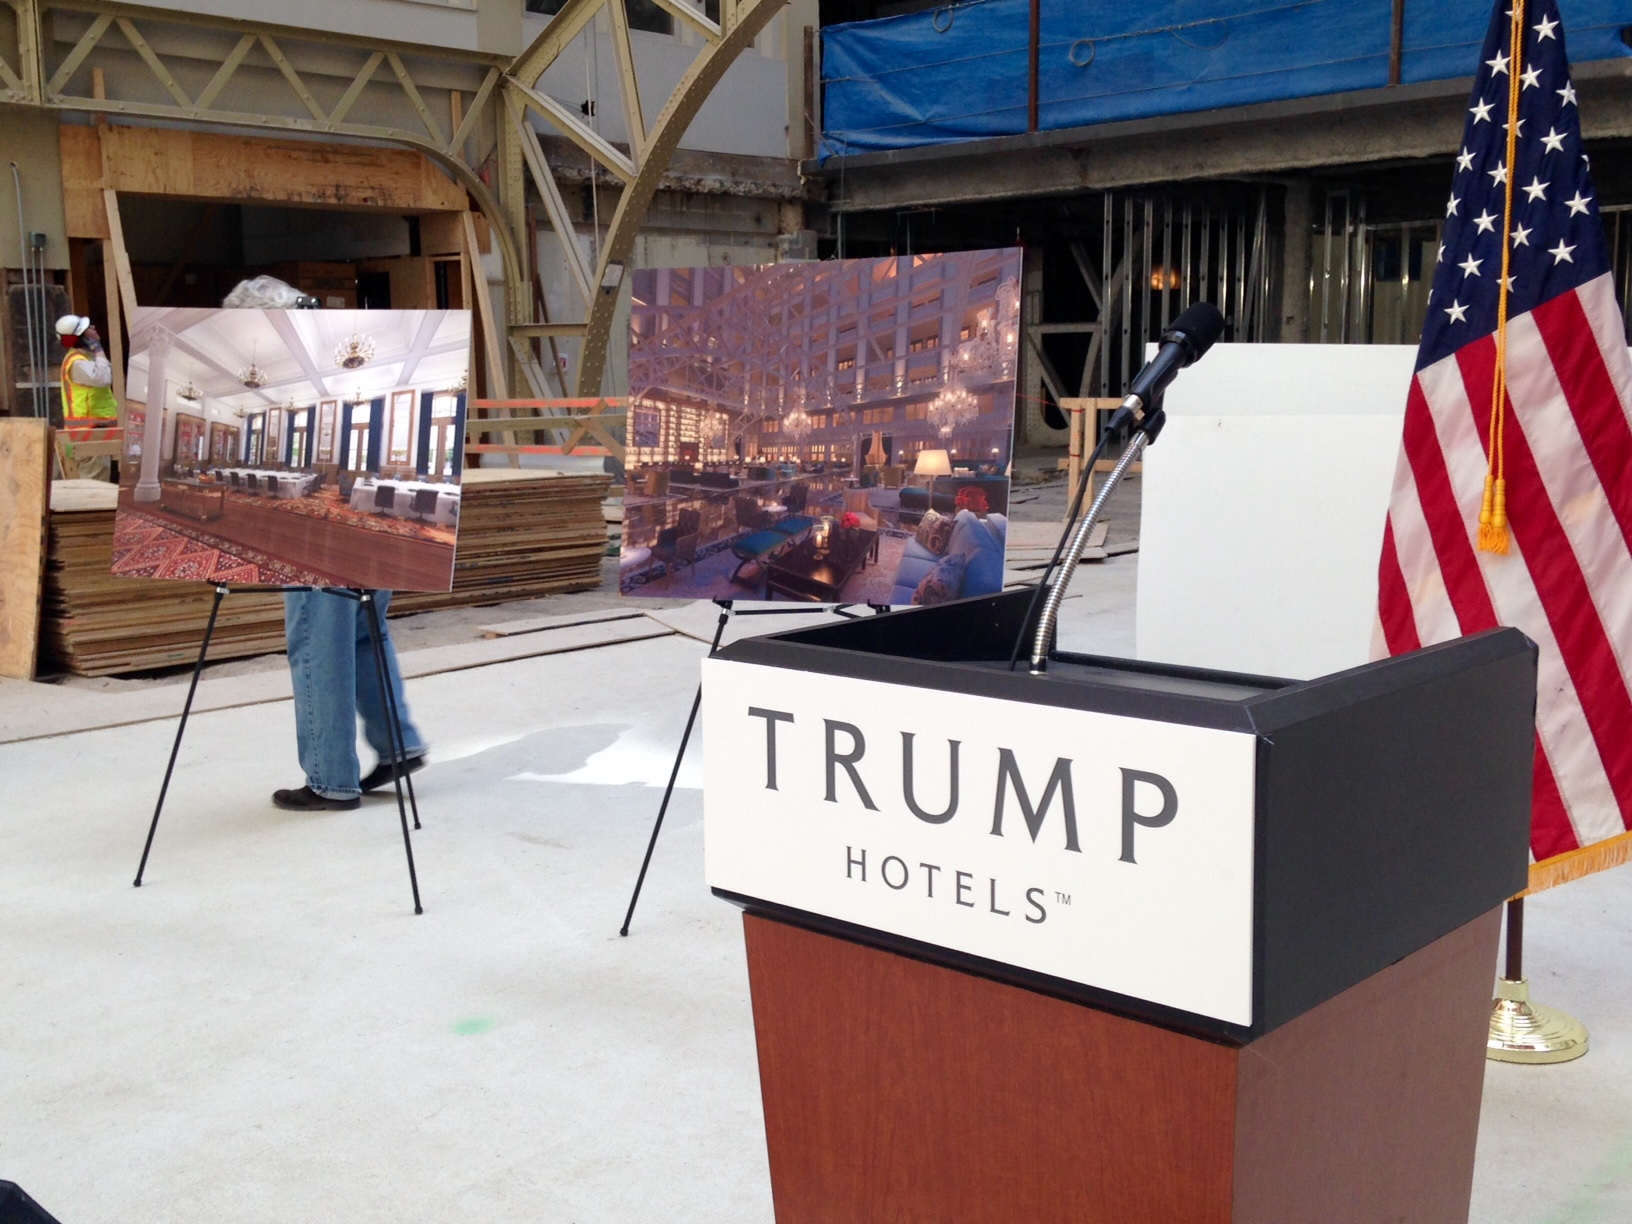 Donald Trump spoke briefly about the hotel design before moving to questions about his campaign. (WTOP/Megan Cloherty)